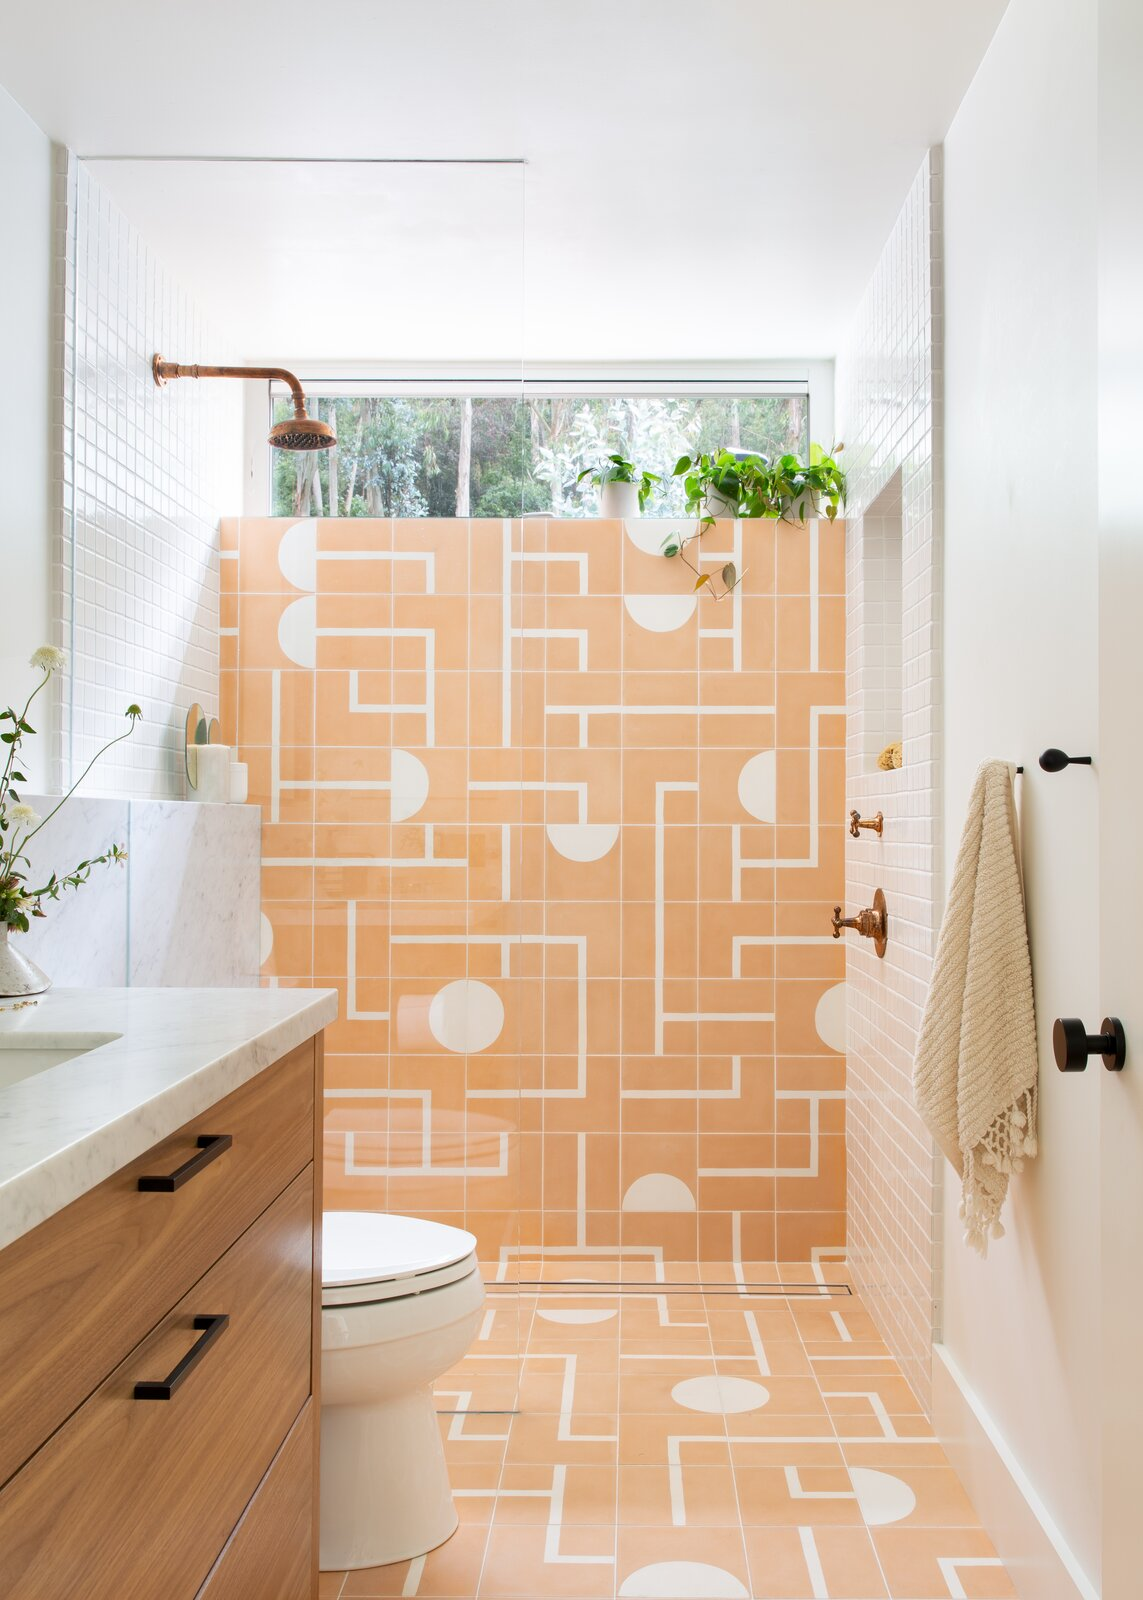 Bath, Ceramic Tile, Subway Tile, Marble, One Piece, Drop In, and Ceramic Tile A geometric, peach-colored tile in the master bathroom adds a joyful jolt to the home. The walnut cabinetry is an ode to the home's mid-century roots.  Bath Ceramic Tile Subway Tile Marble Photos from This Colorful House in San Francisco May Be Boxy, But It's Anything But Square